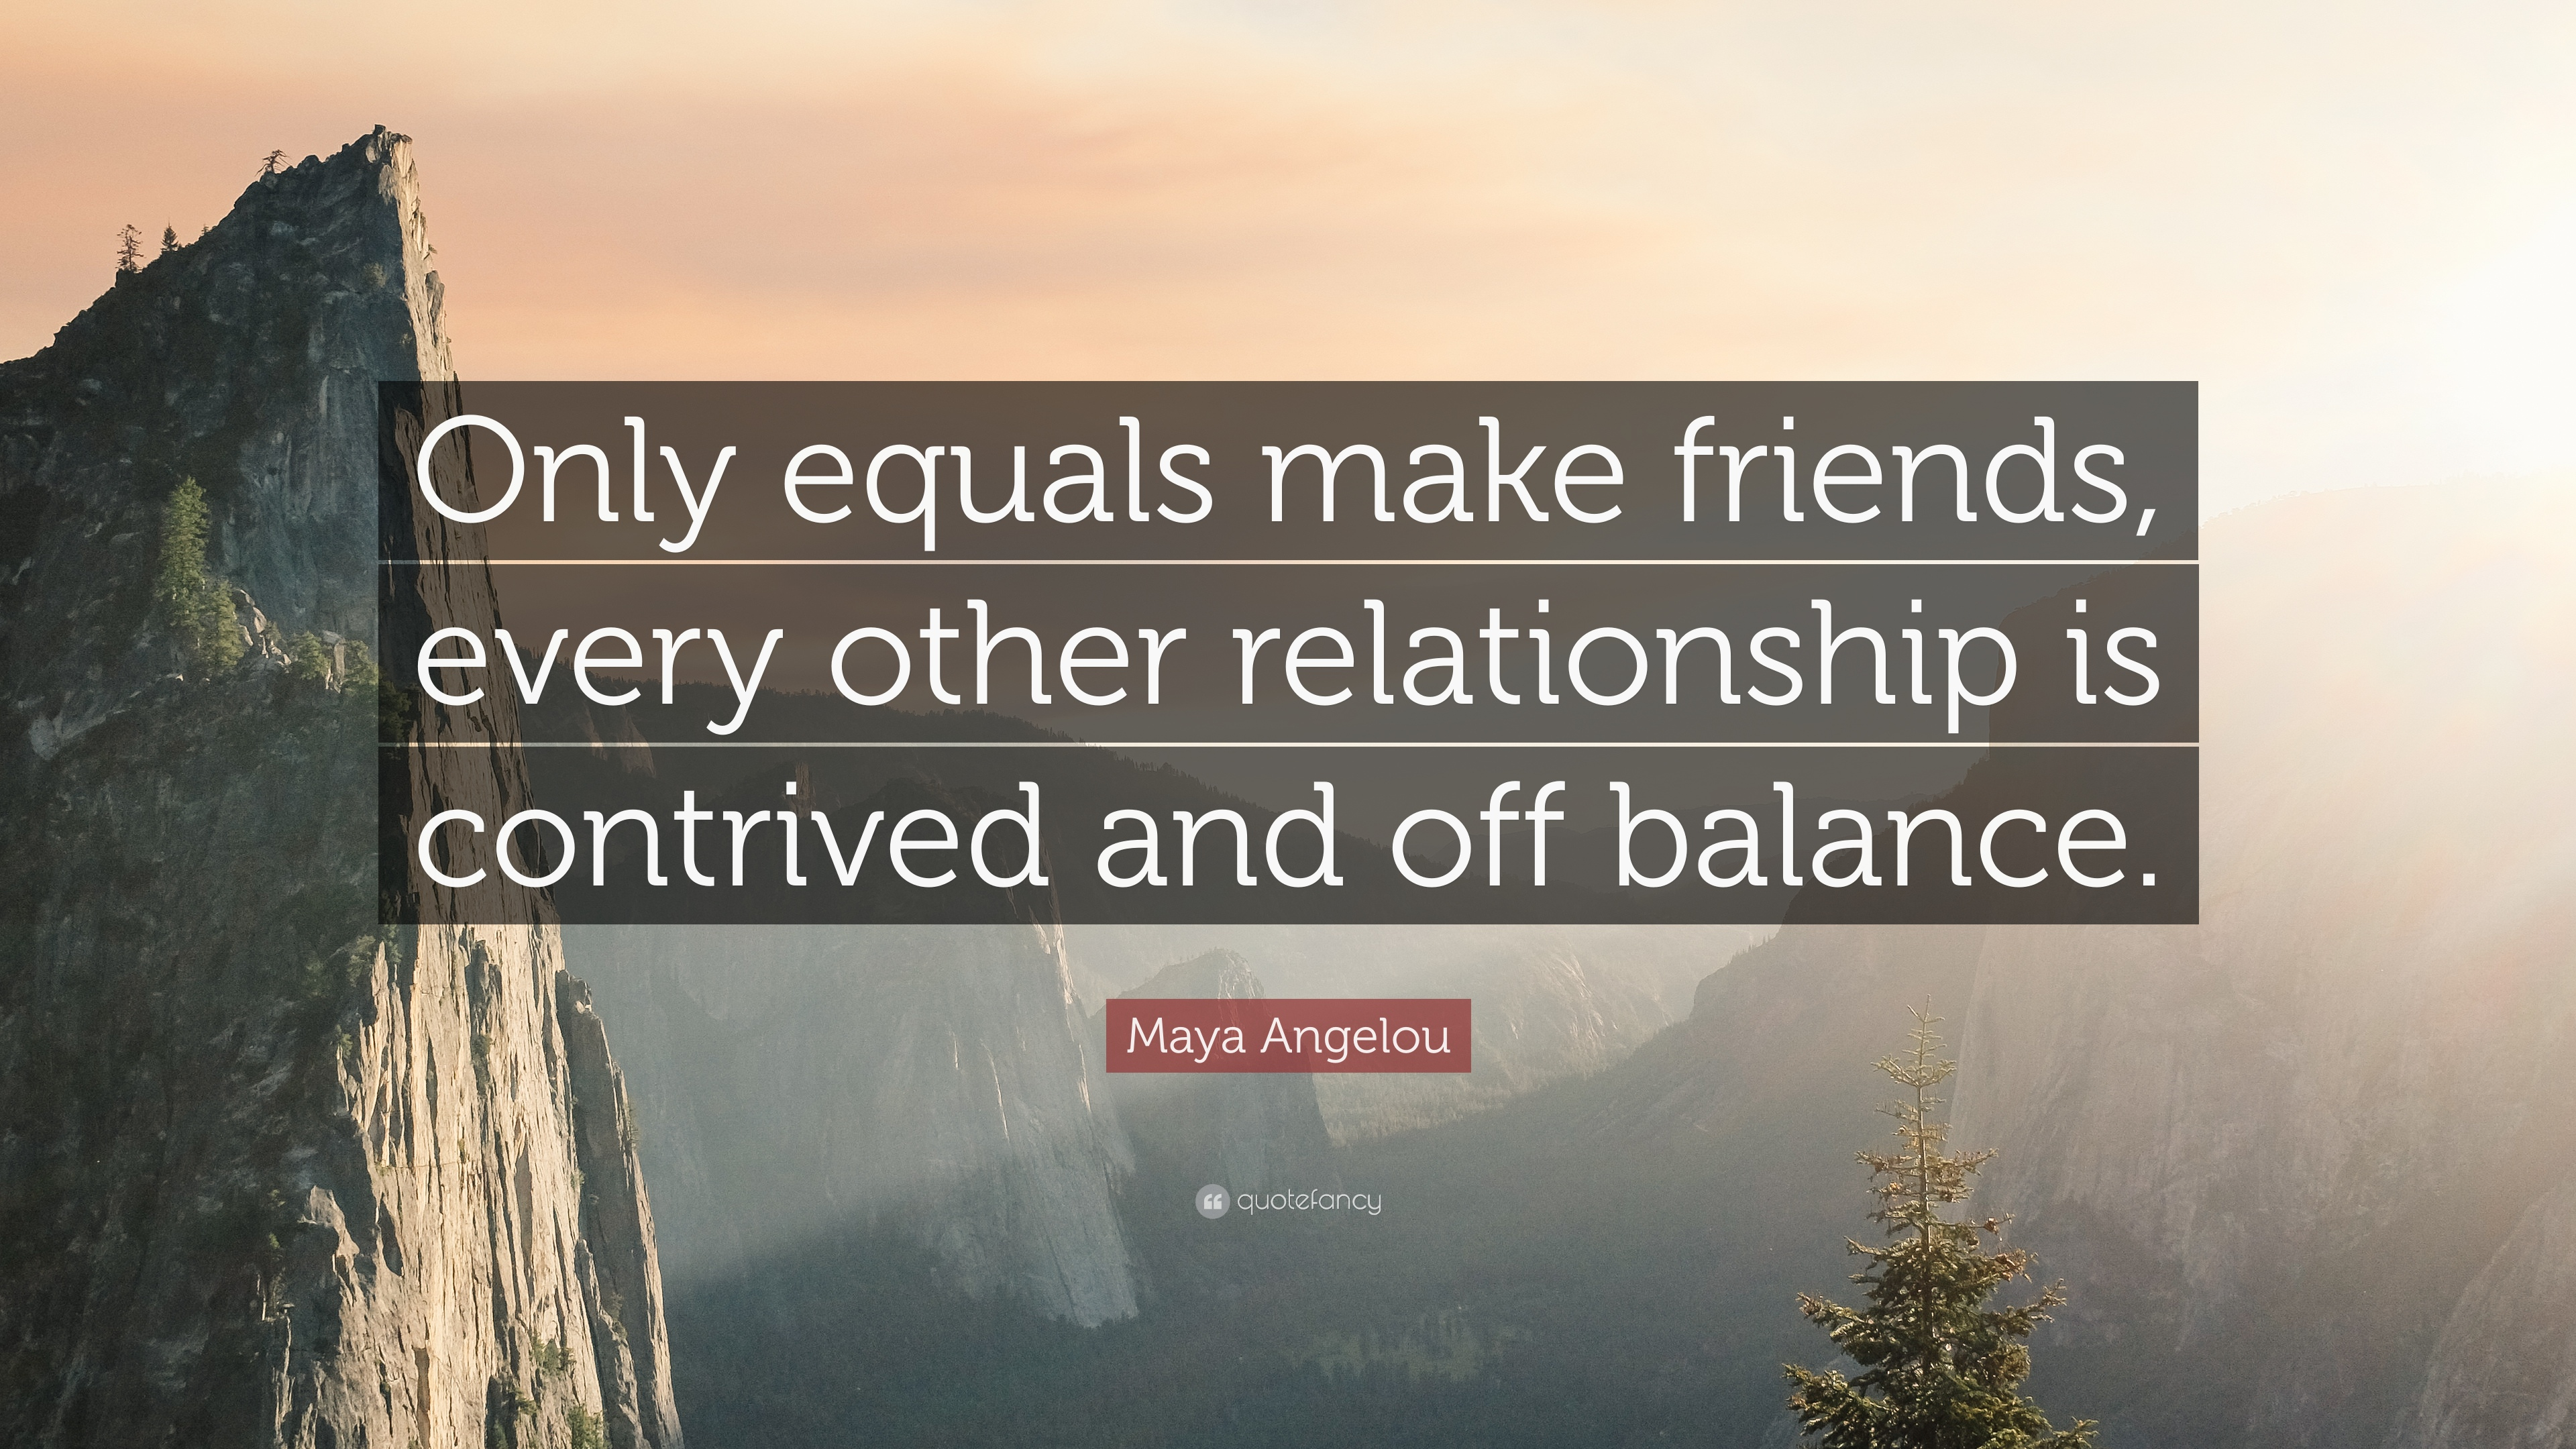 Amazing Maya Angelou Quote: U201cOnly Equals Make Friends, Every Other Relationship Is  Contrived And